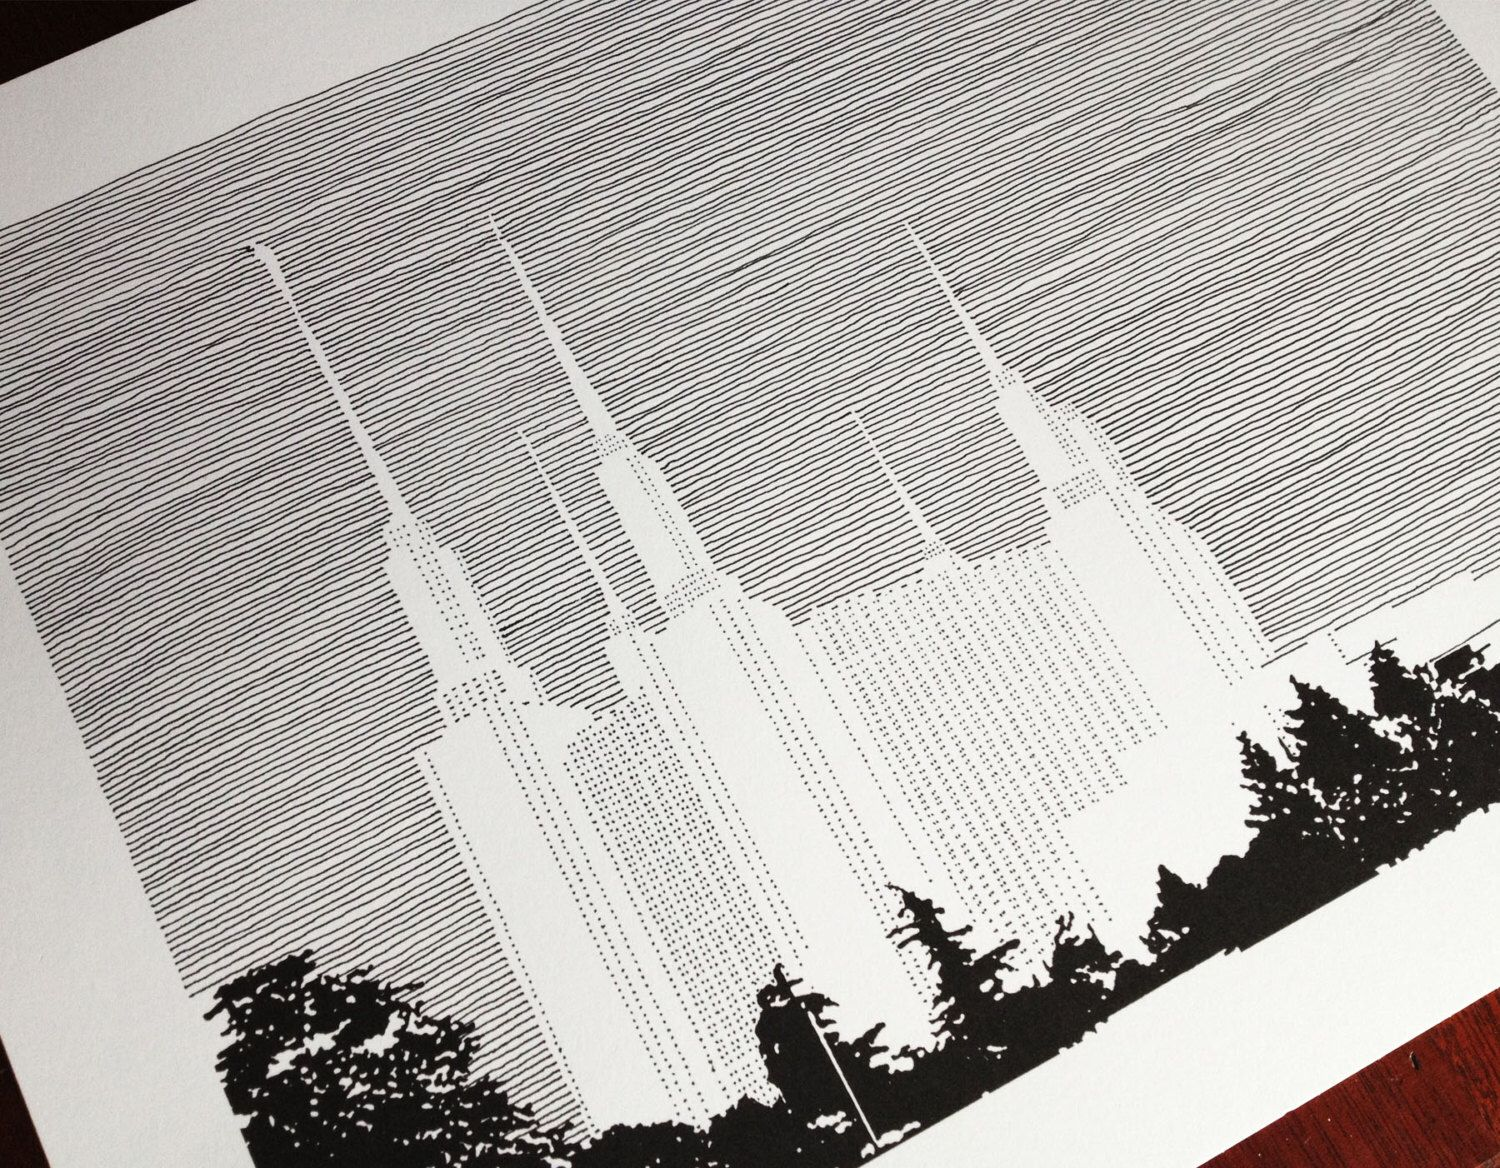 WASHINGTON DC LDS Temple (Original Drawing) Modern Ink Lines by TOTCtemples on Etsy https://www.etsy.com/listing/202459852/washington-dc-lds-temple-original